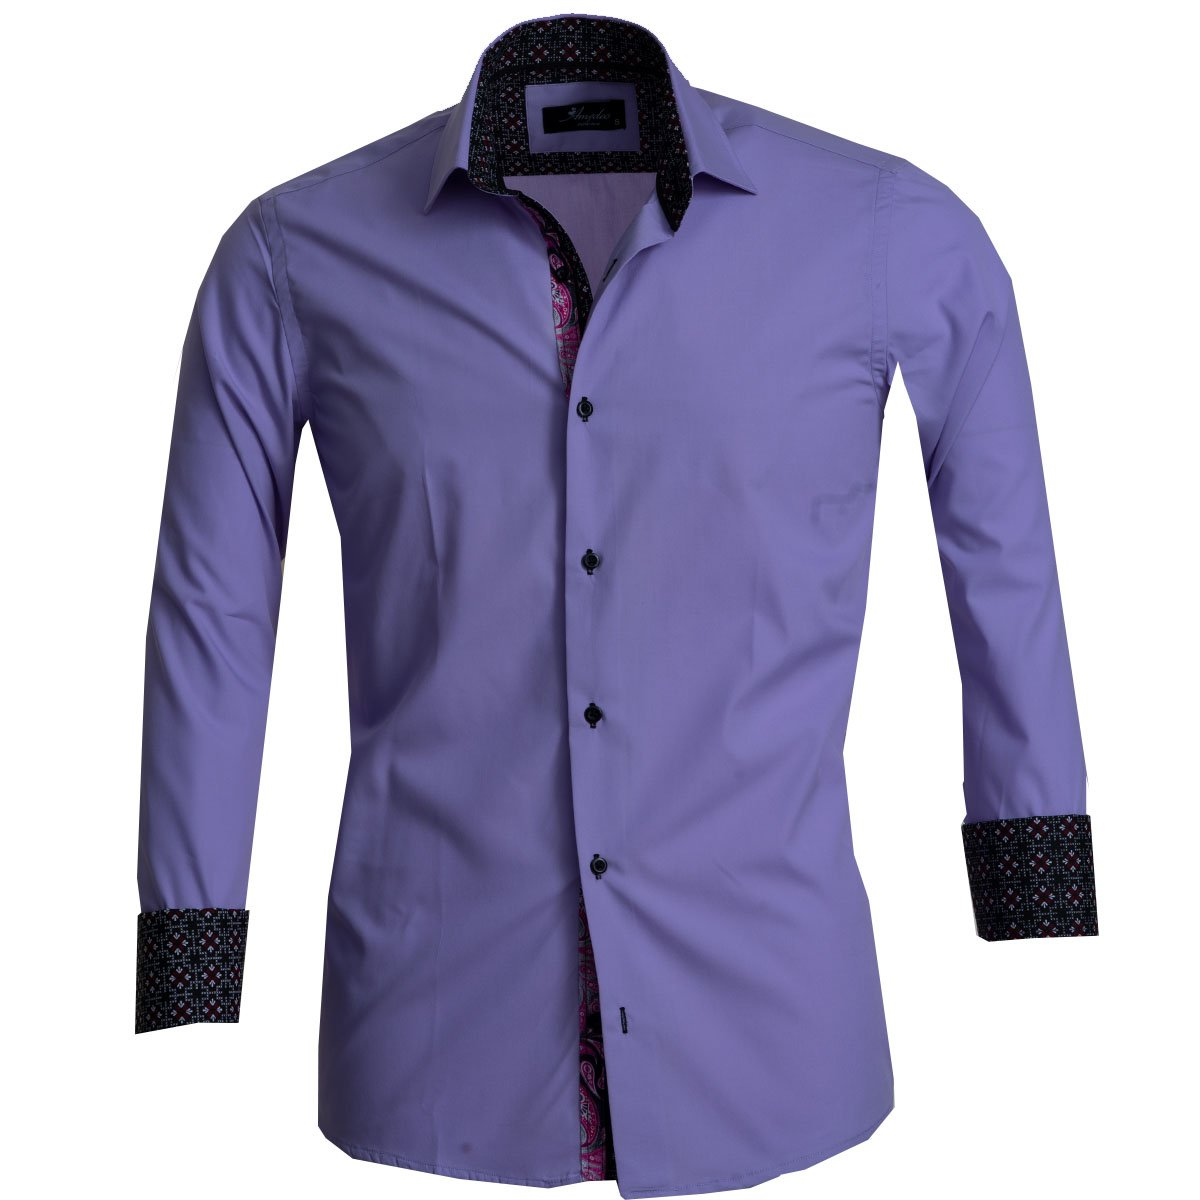 Solid Purple Mens Slim Fit French Cuff Dress Shirts with Cufflink Holes - Casual and Formal - Amedeo Exclusive